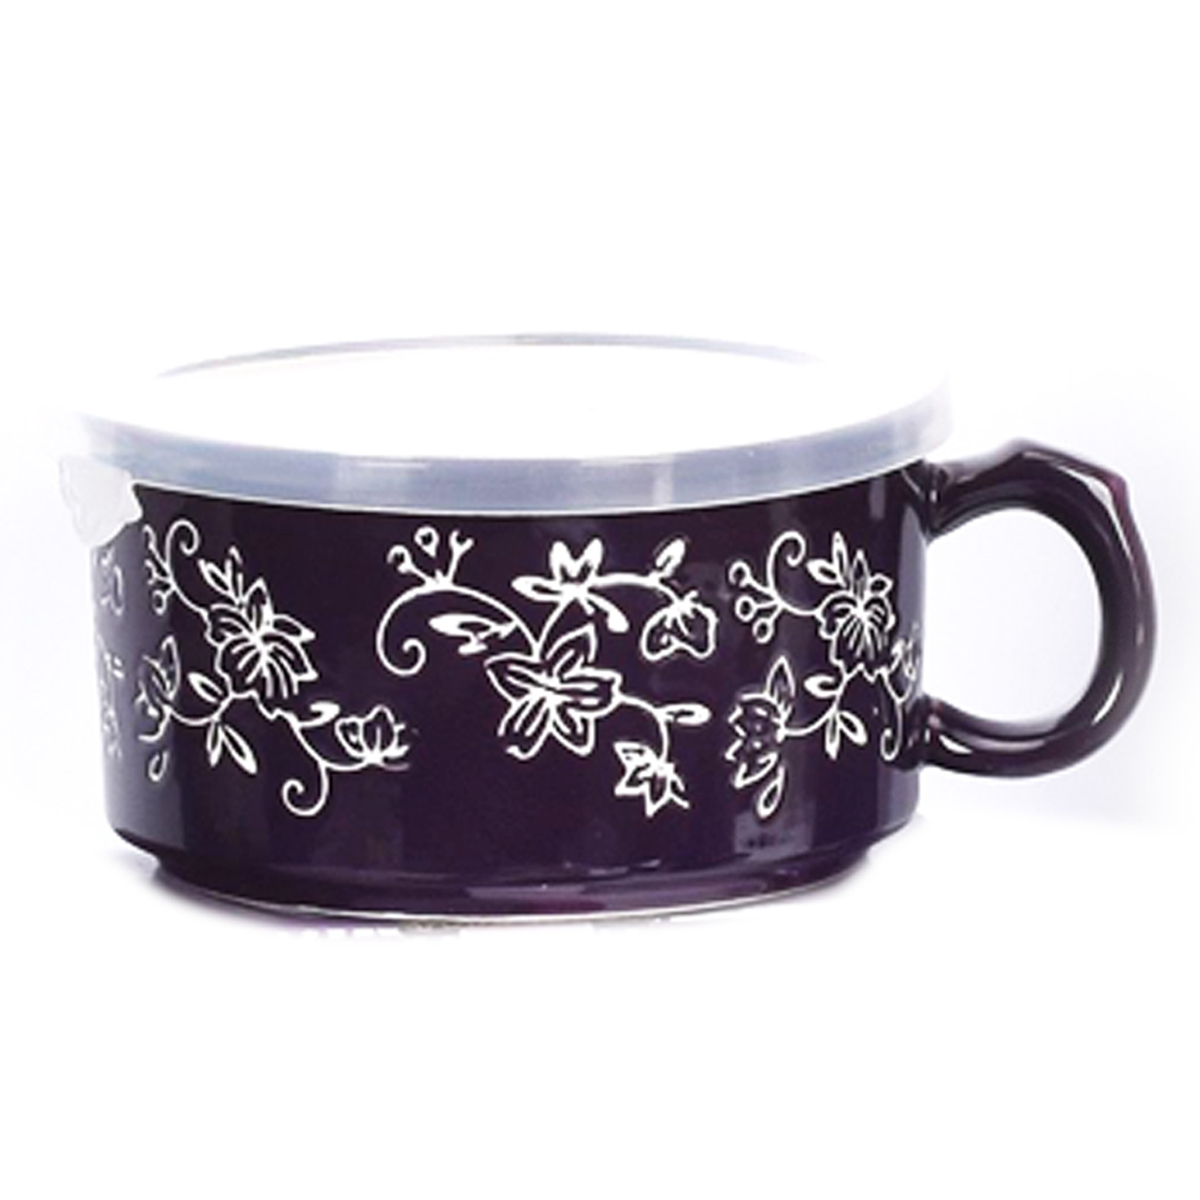 temp-tations® Floral Lace Meal Mug with Gift Box – Eggplant